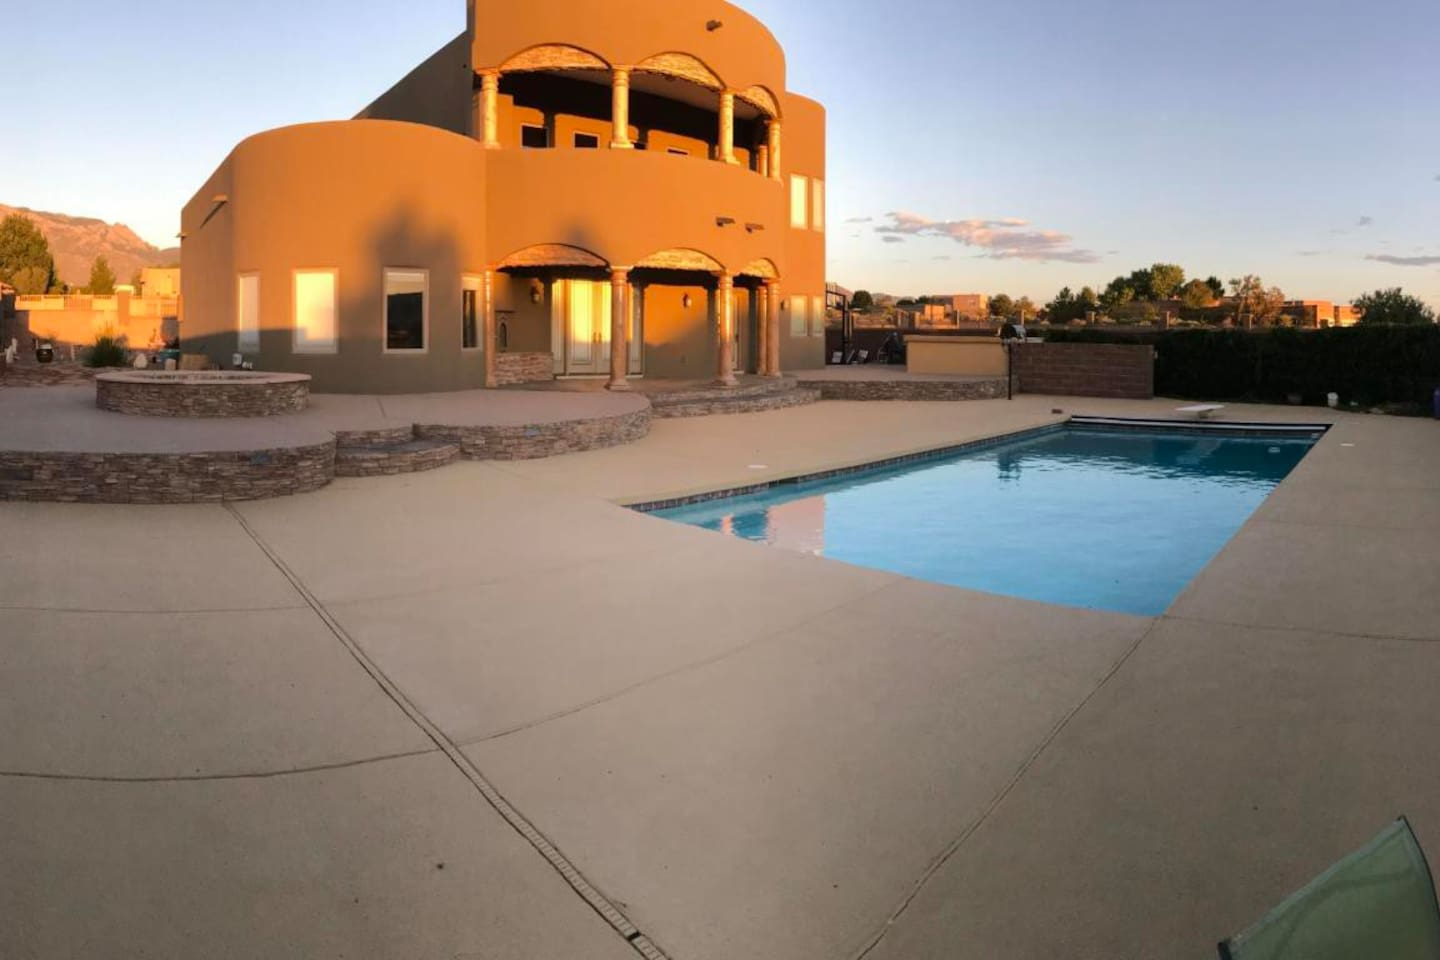 Relax and enjoy the beautiful sunsets and sunrises by the pool.